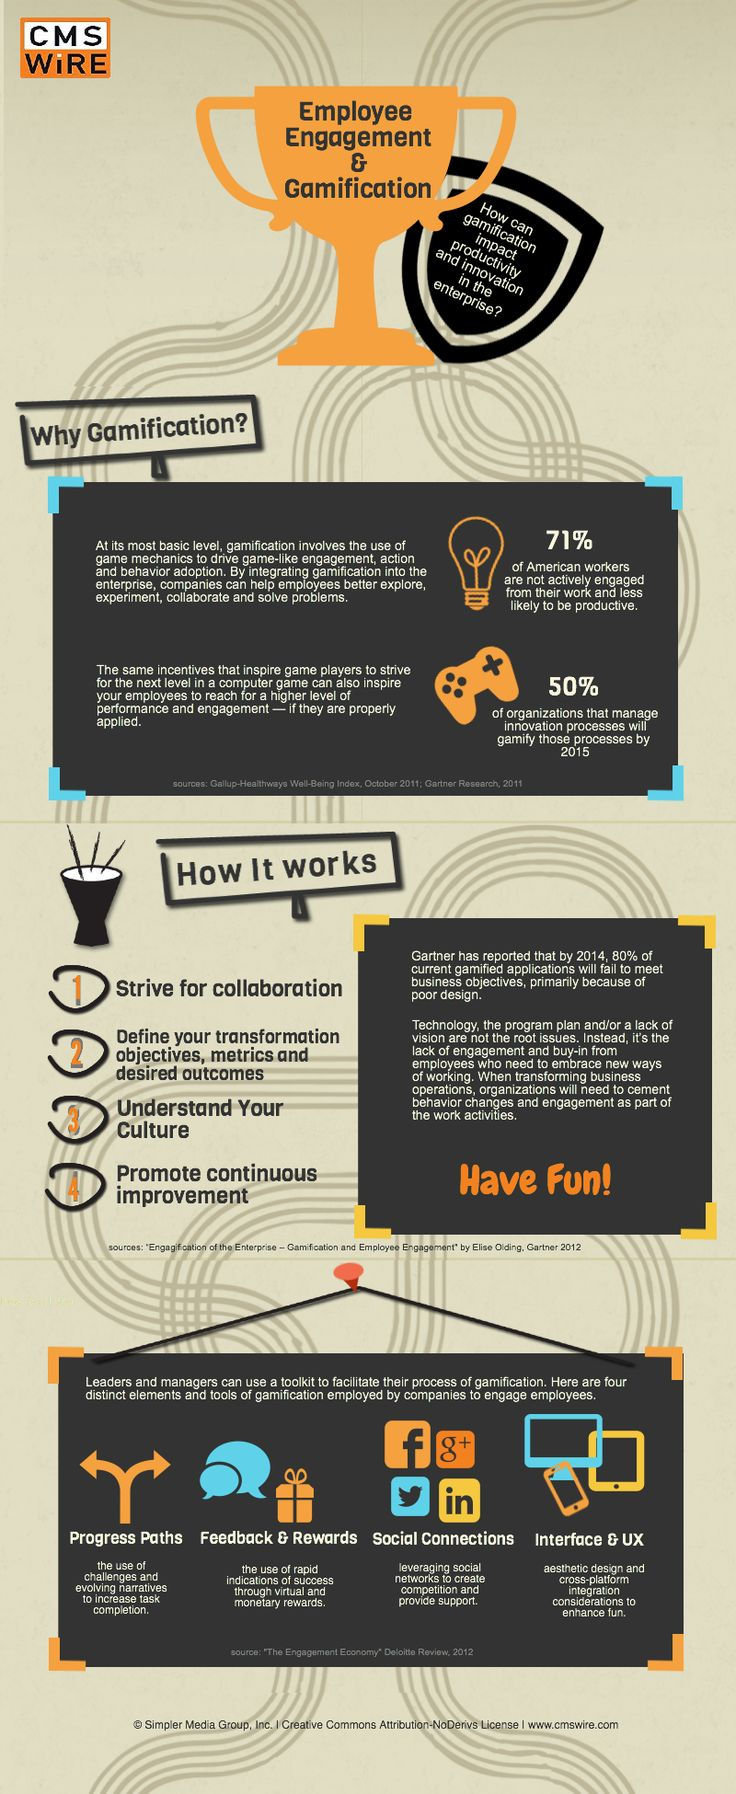 How #Gamification Can Impact Employee Engagement [#Infographic]